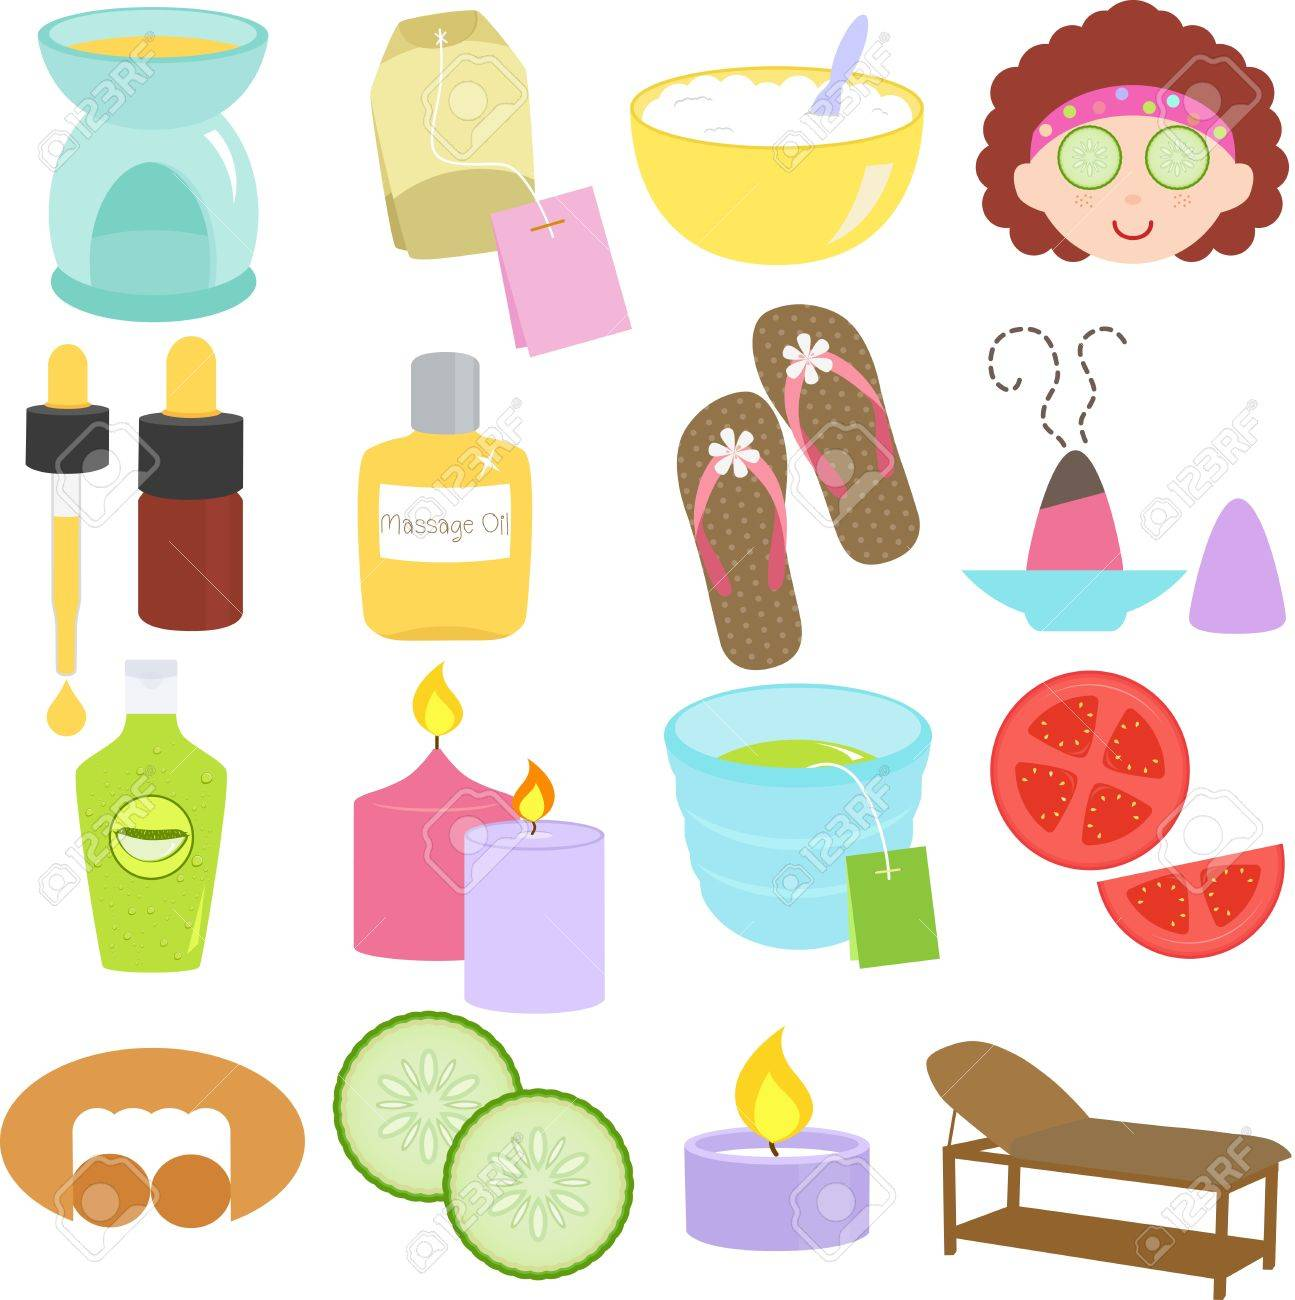 A set of Beauty tools, Spa Icons, Relaxation, Massage in Pastel Stock Vector - 16138208